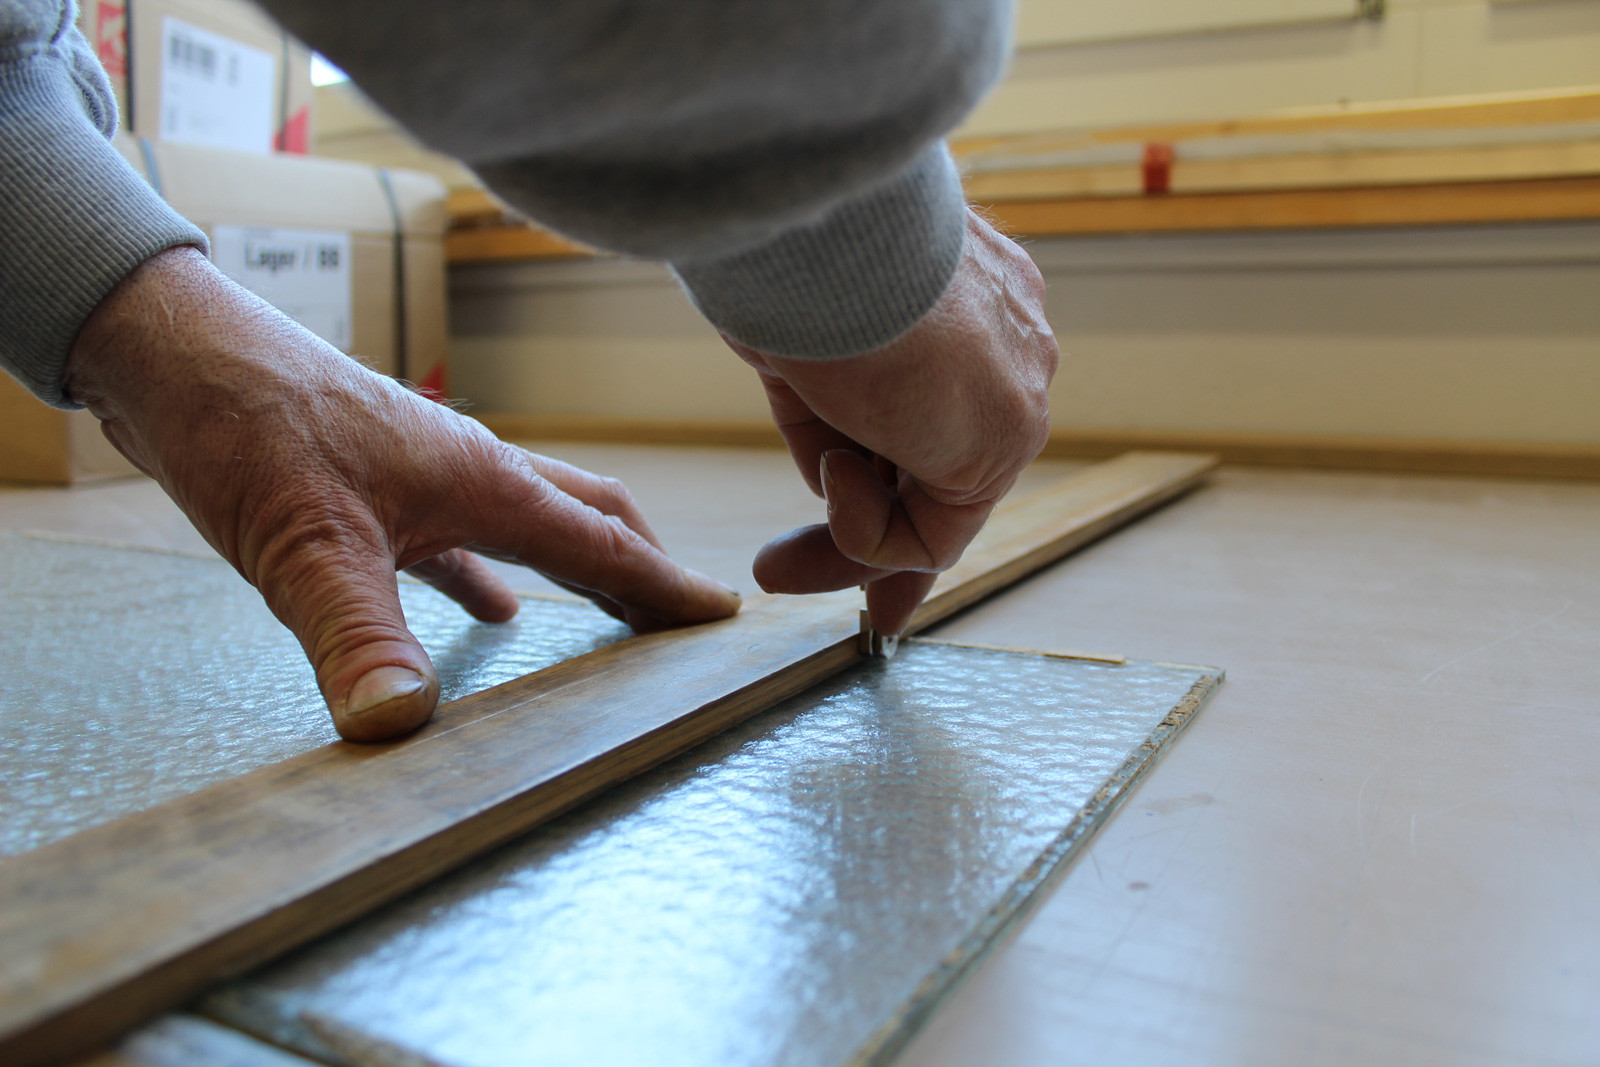 Cutting special glass to size for a window repair.